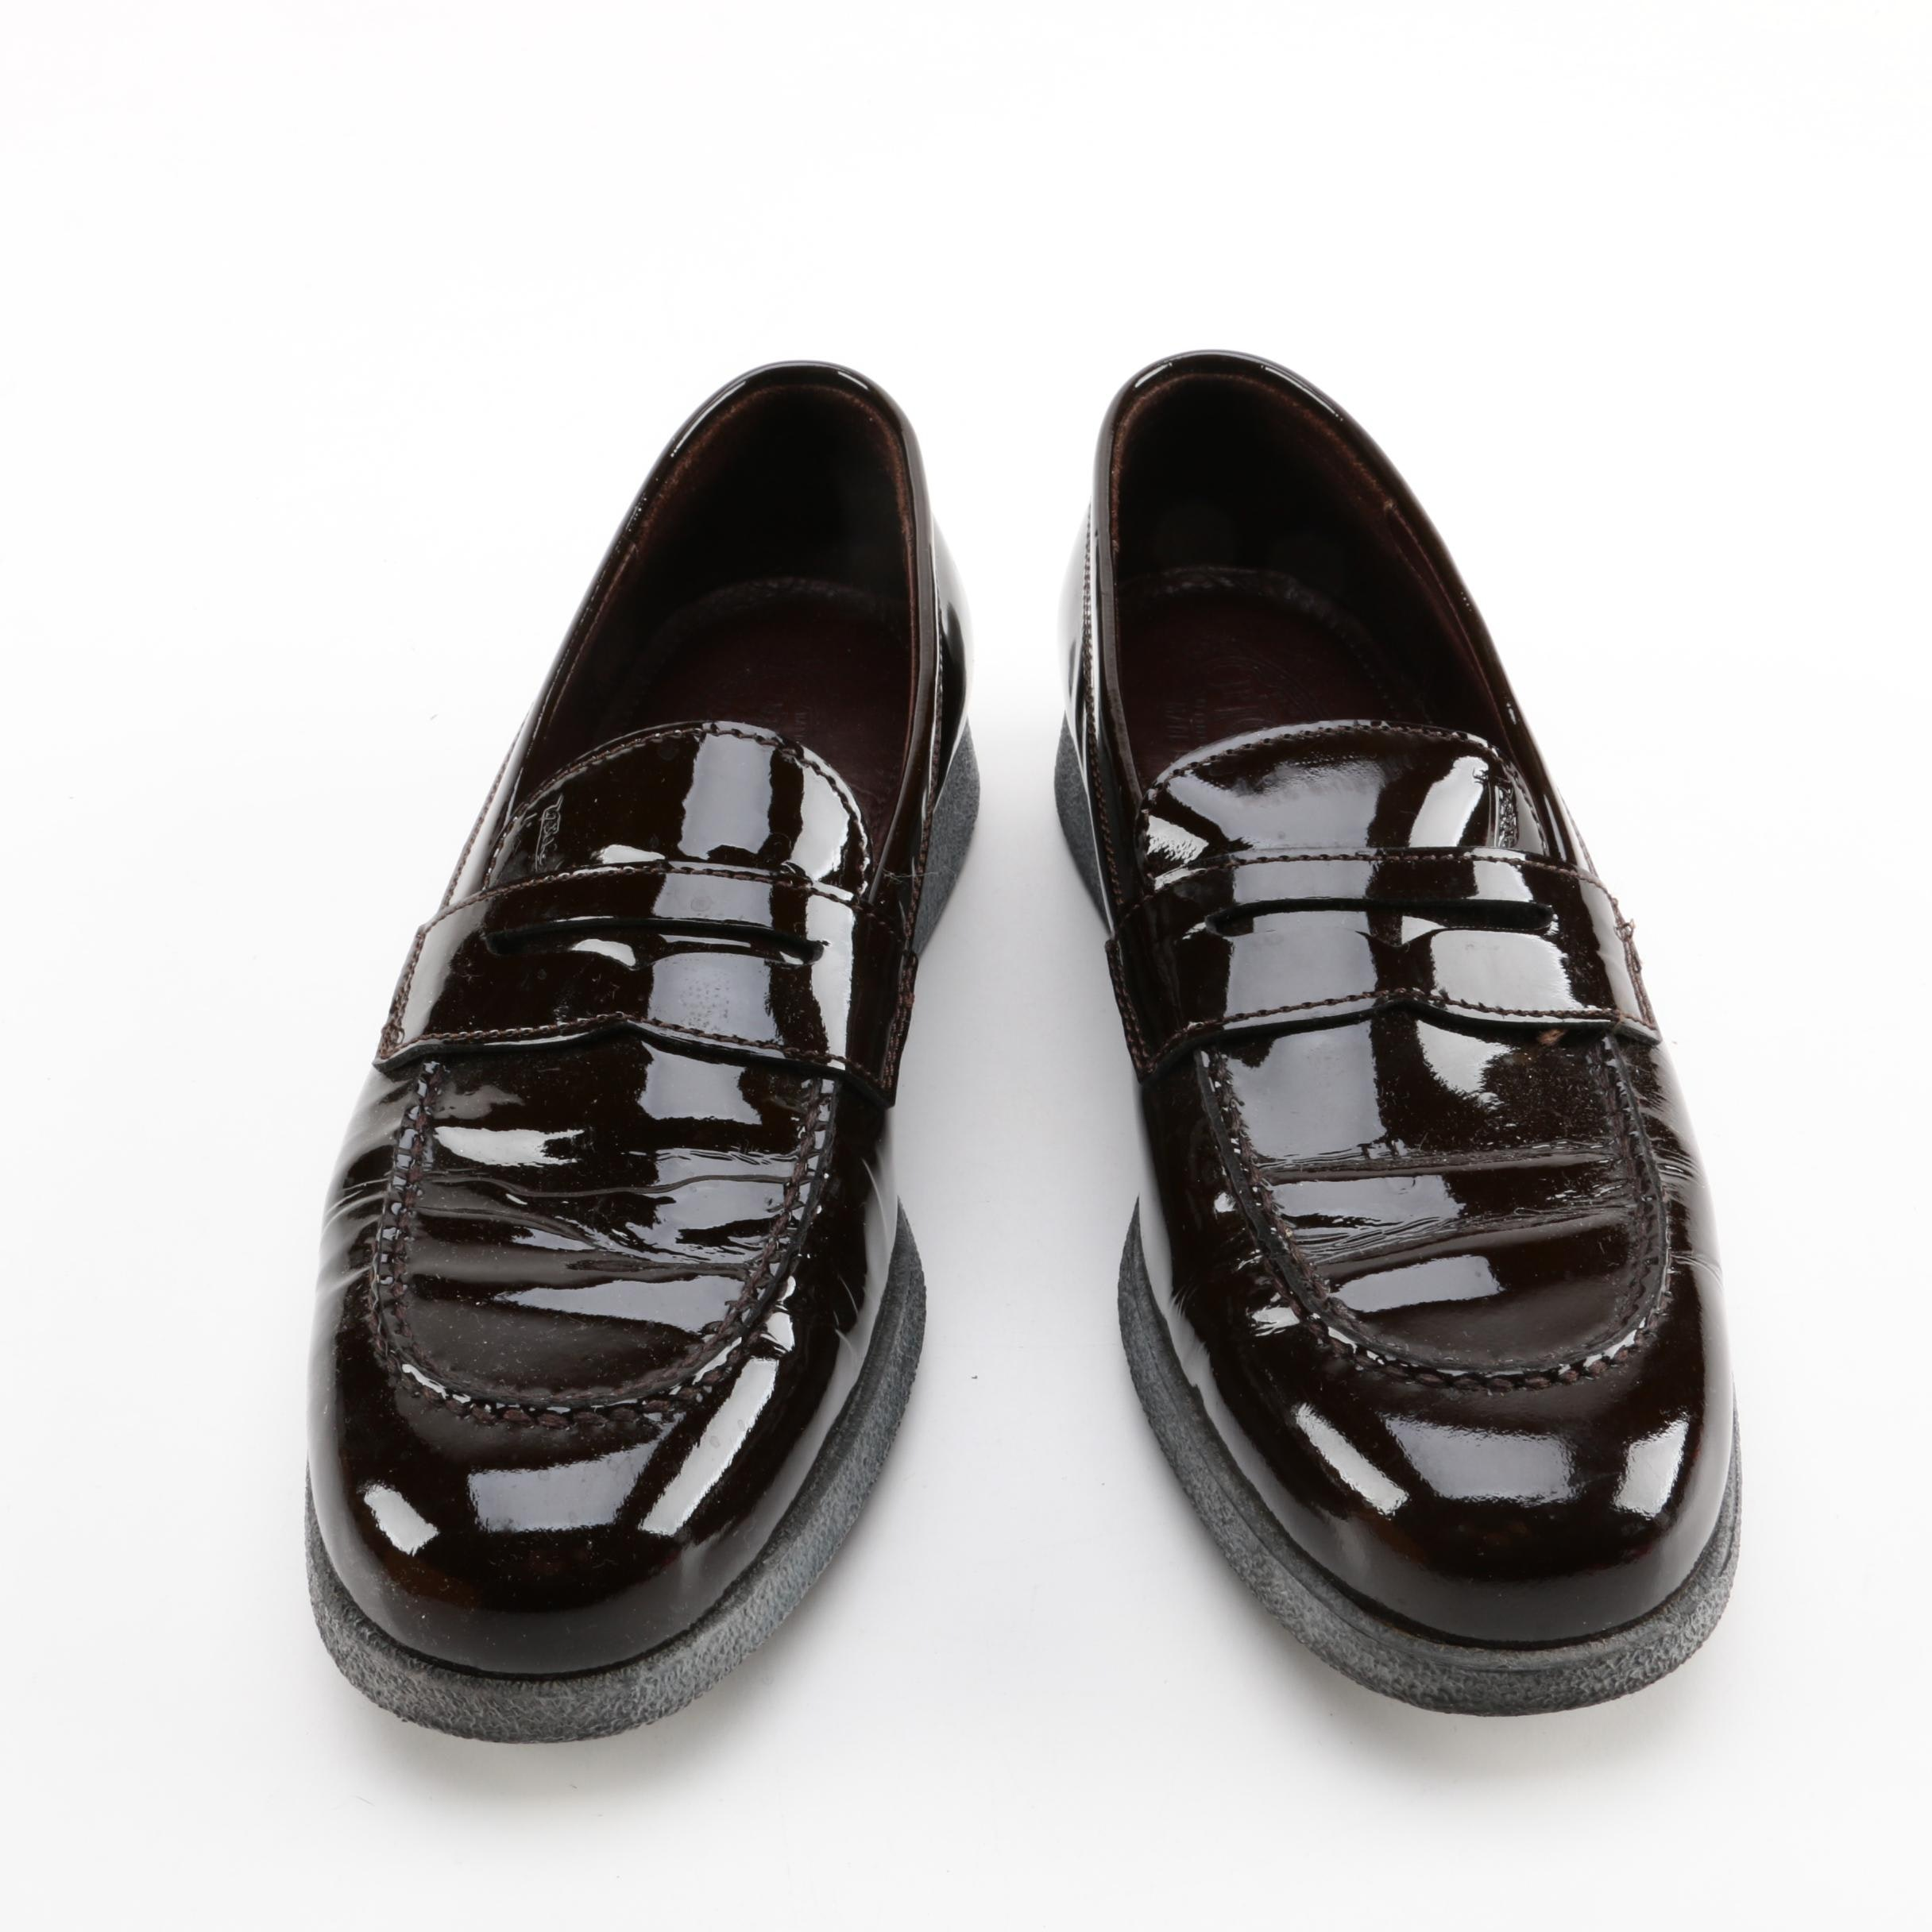 Women's J.P. Tod's Dark Brown Patent Leather Loafers